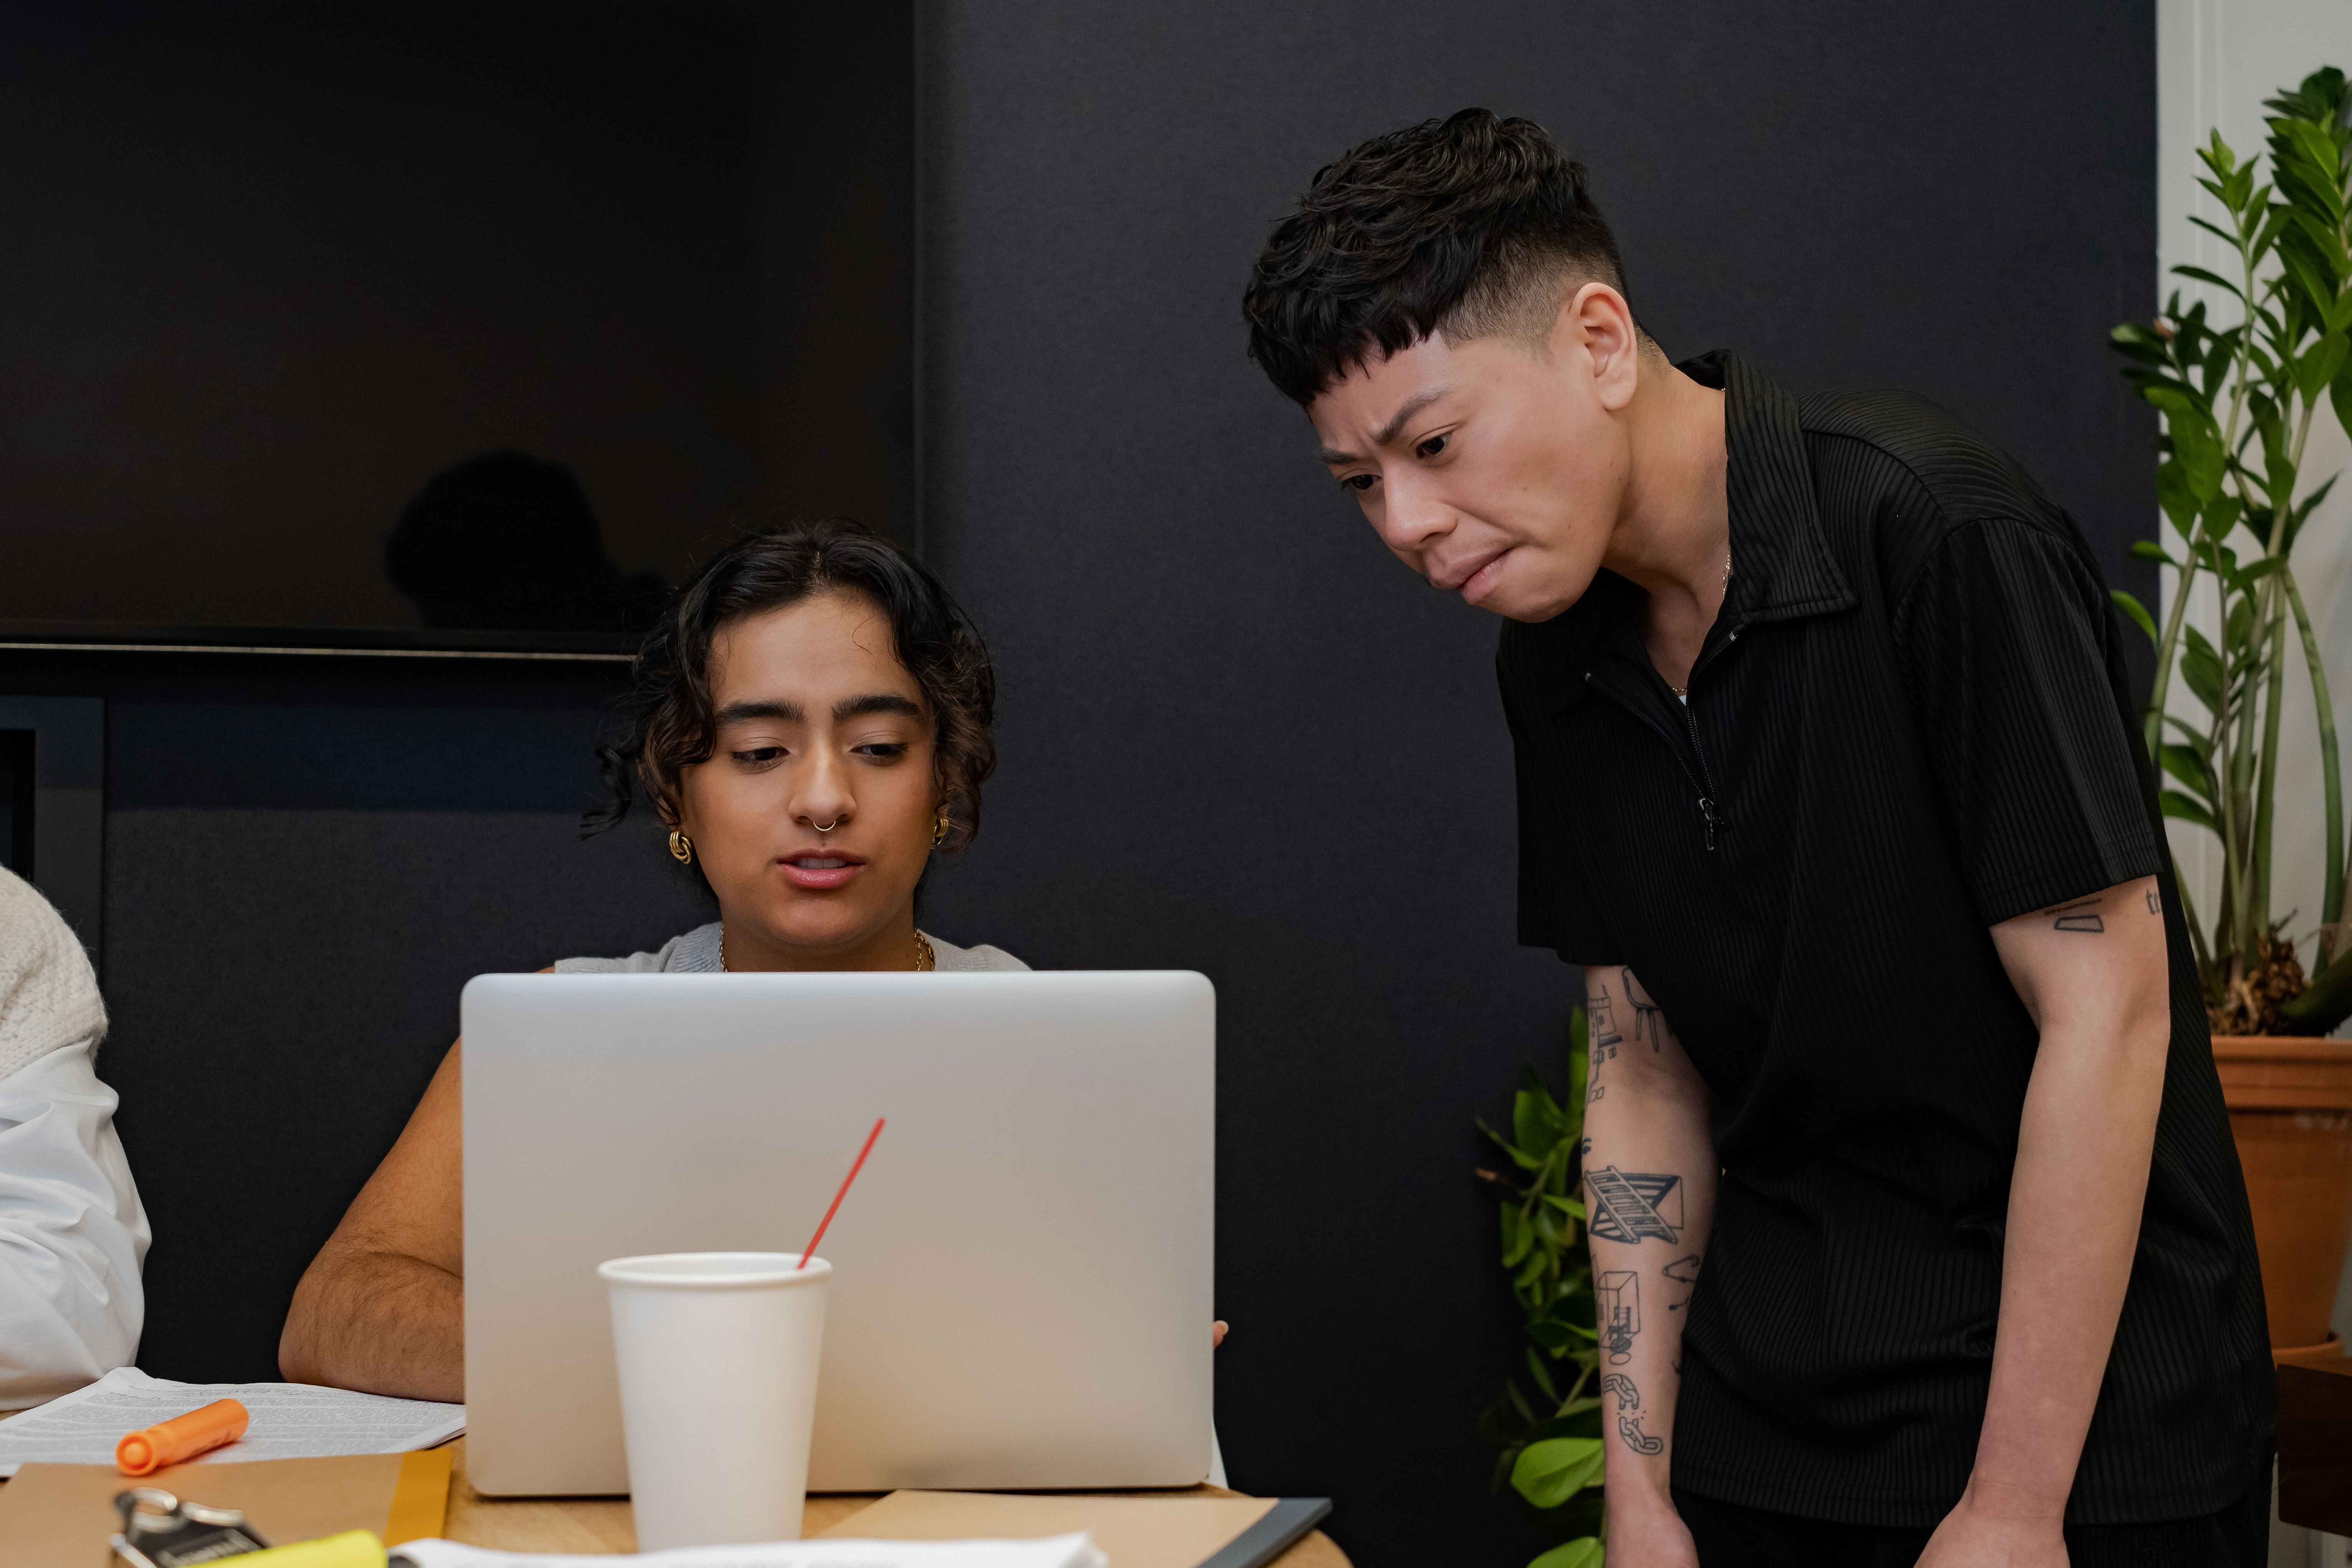 A trans man showing a non-binary colleague something on a laptop